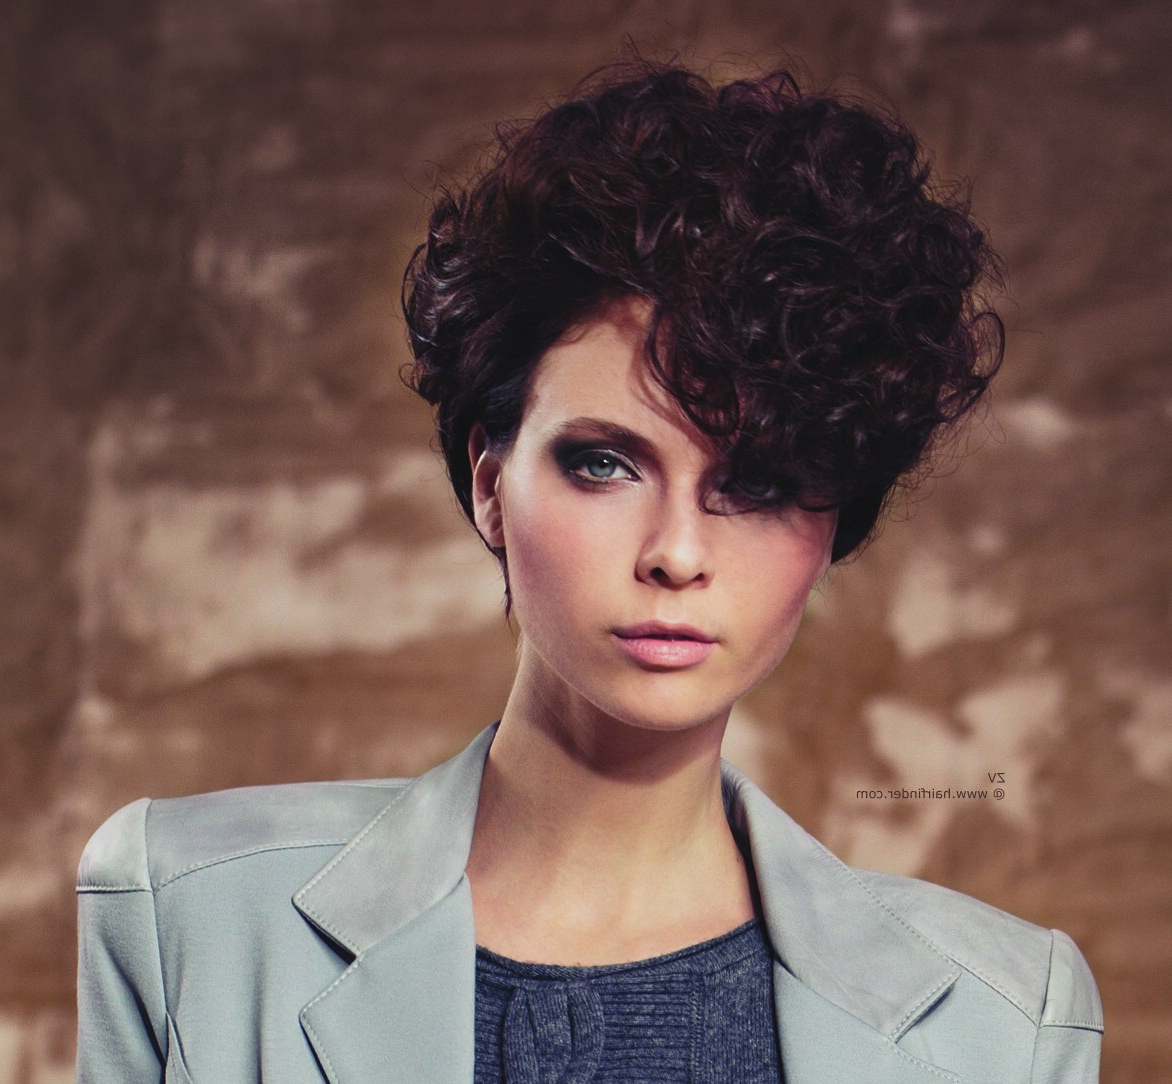 Curly Hairstyles : Messy Curly Short Hairstyles Curly Hairstyless Throughout Short Messy Curly Hairstyles (View 13 of 20)